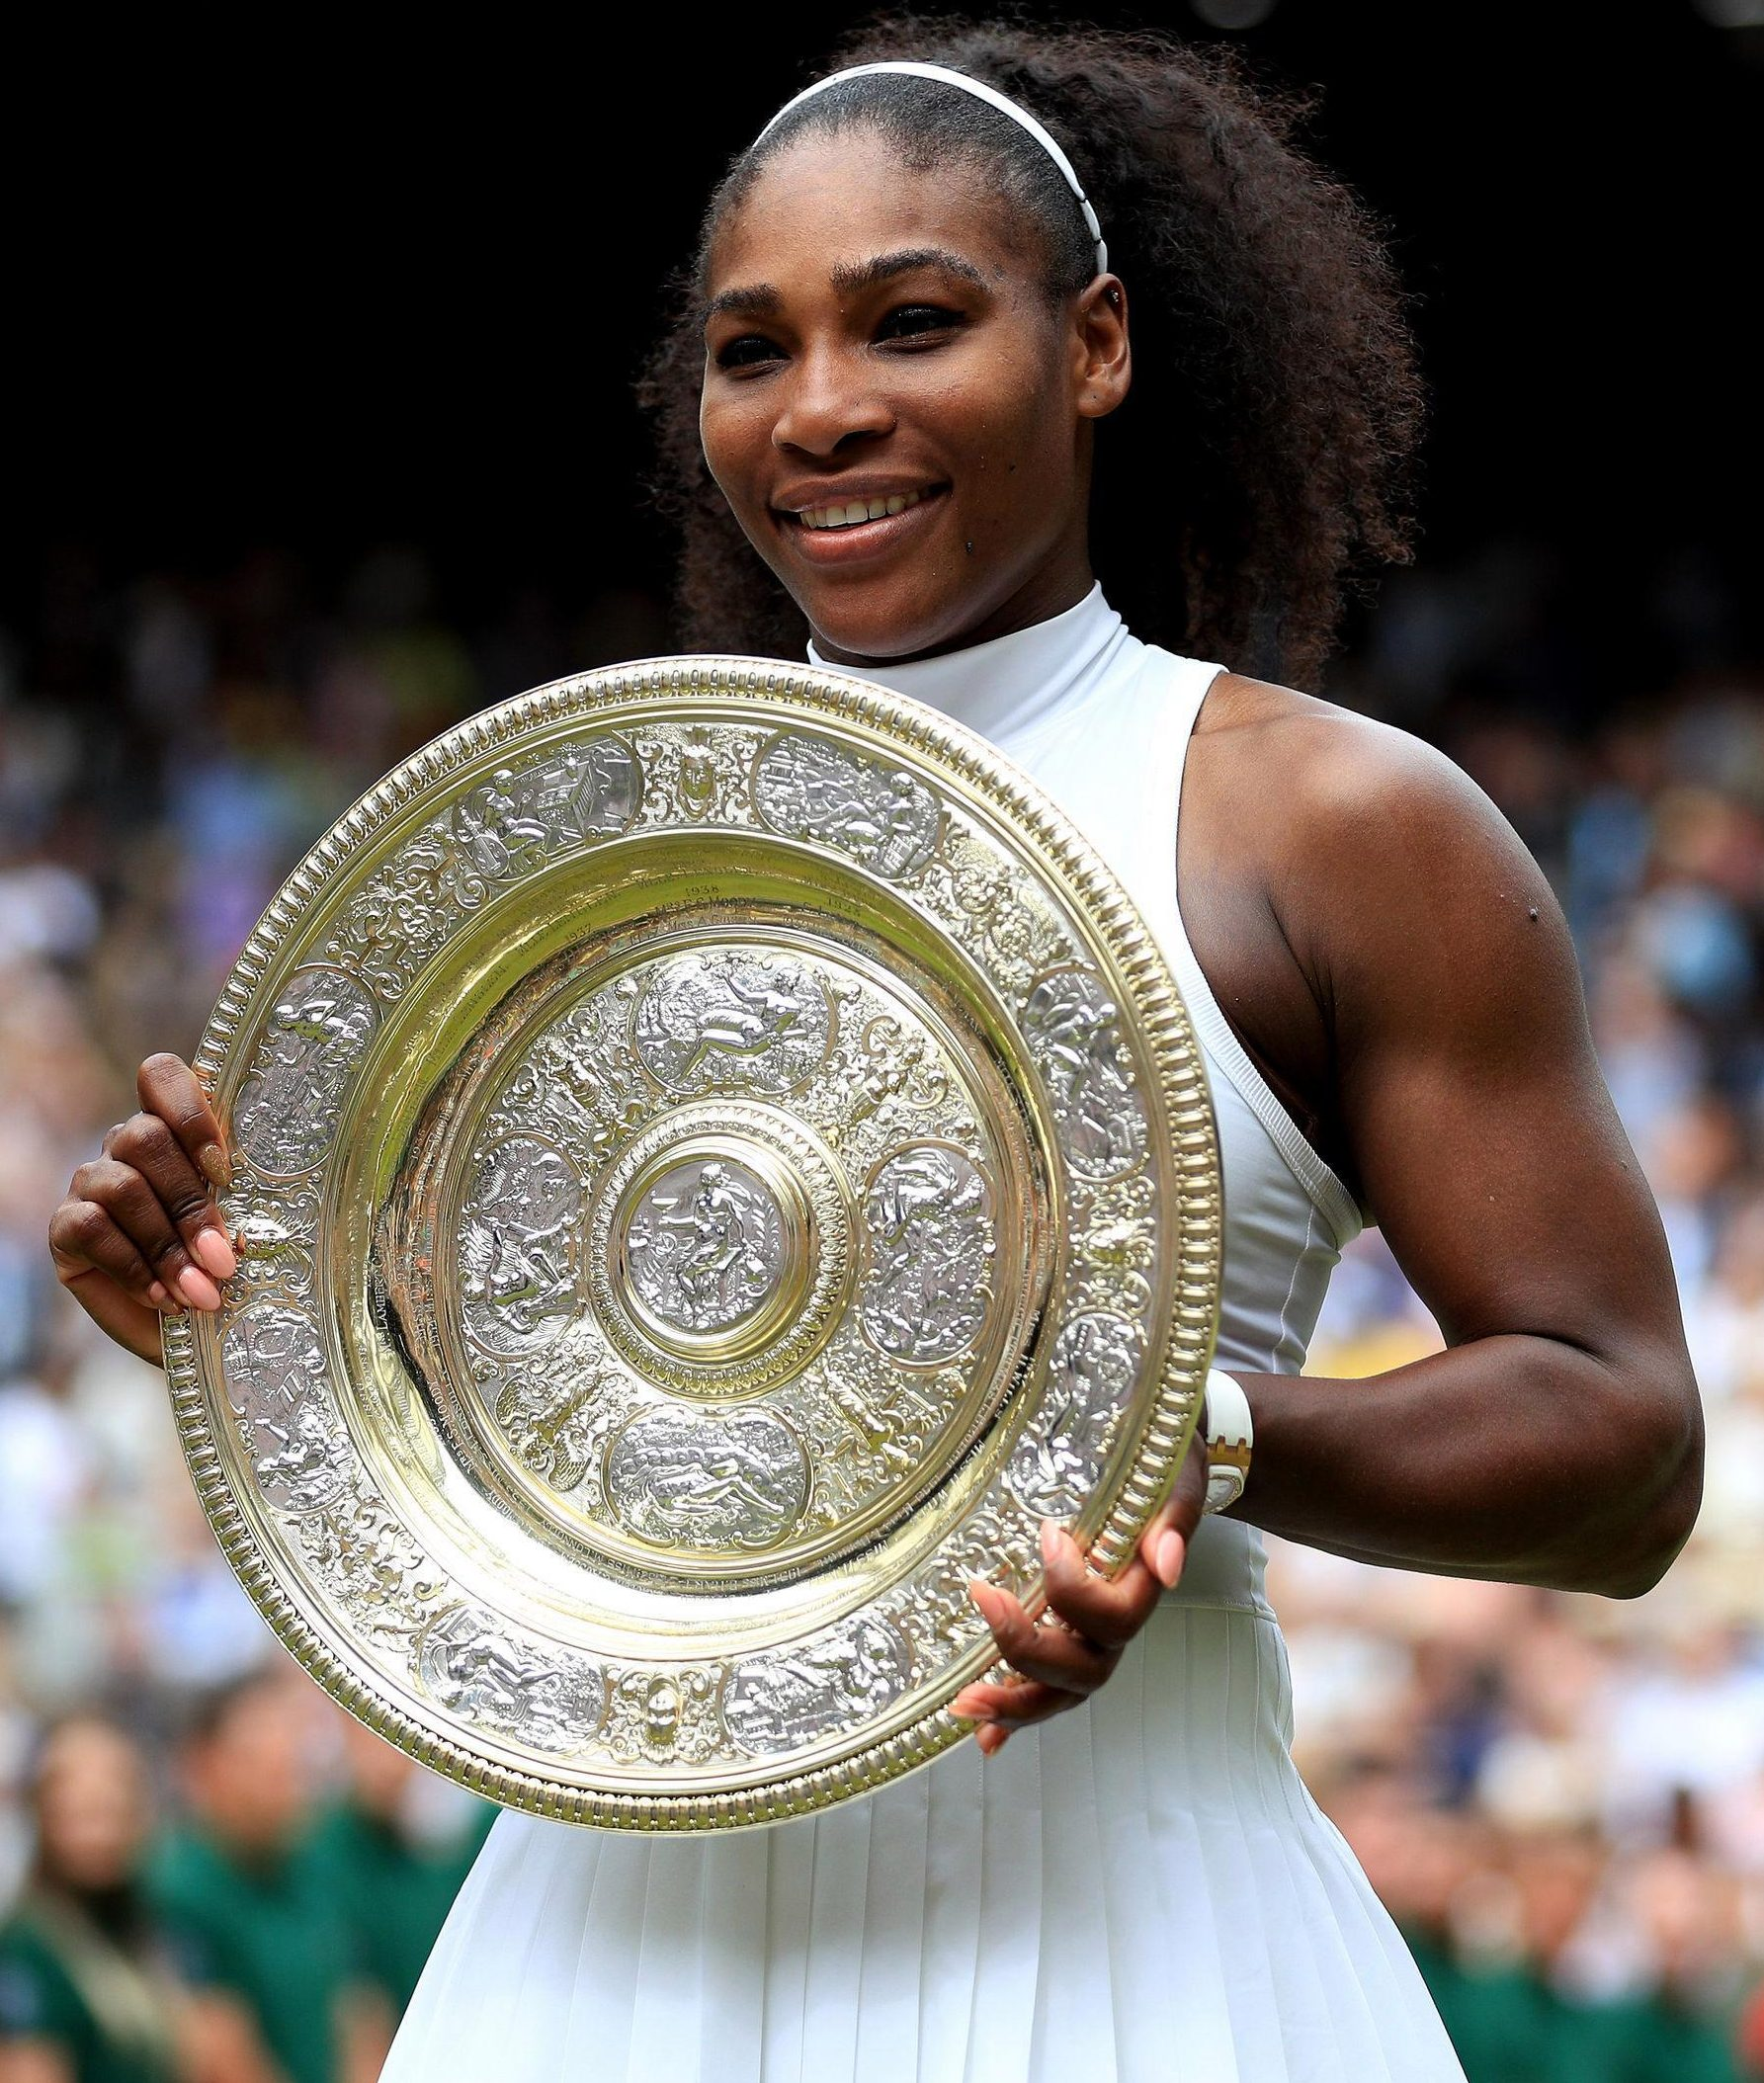 Seven-time champions and new mum Serena Williams is expected to grace SW19